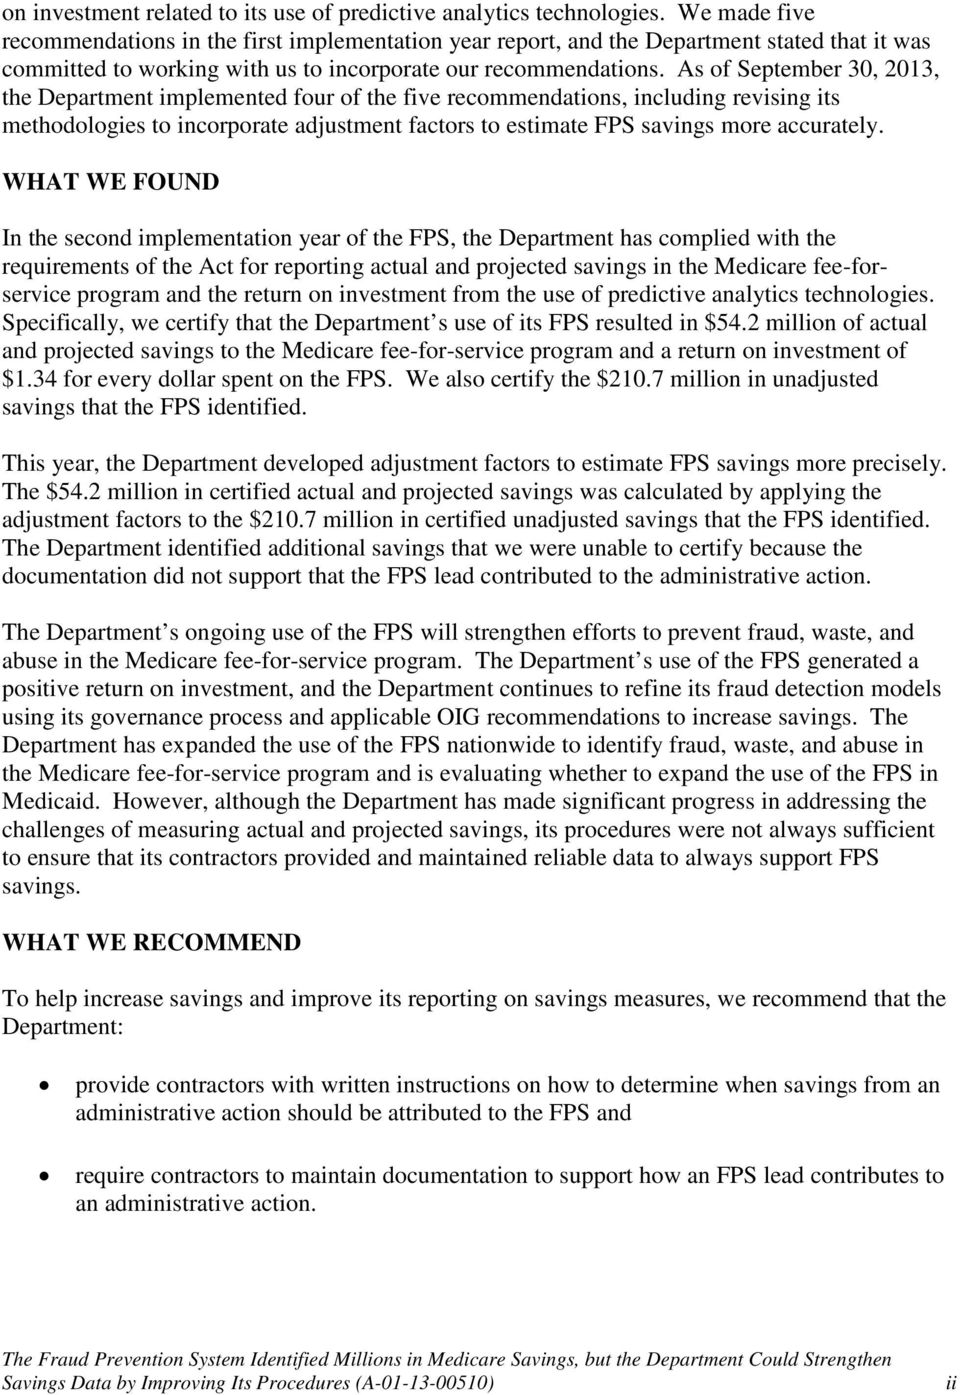 As of September 30, 2013, the Department implemented four of the five recommendations, including revising its methodologies to incorporate adjustment factors to estimate FPS savings more accurately.